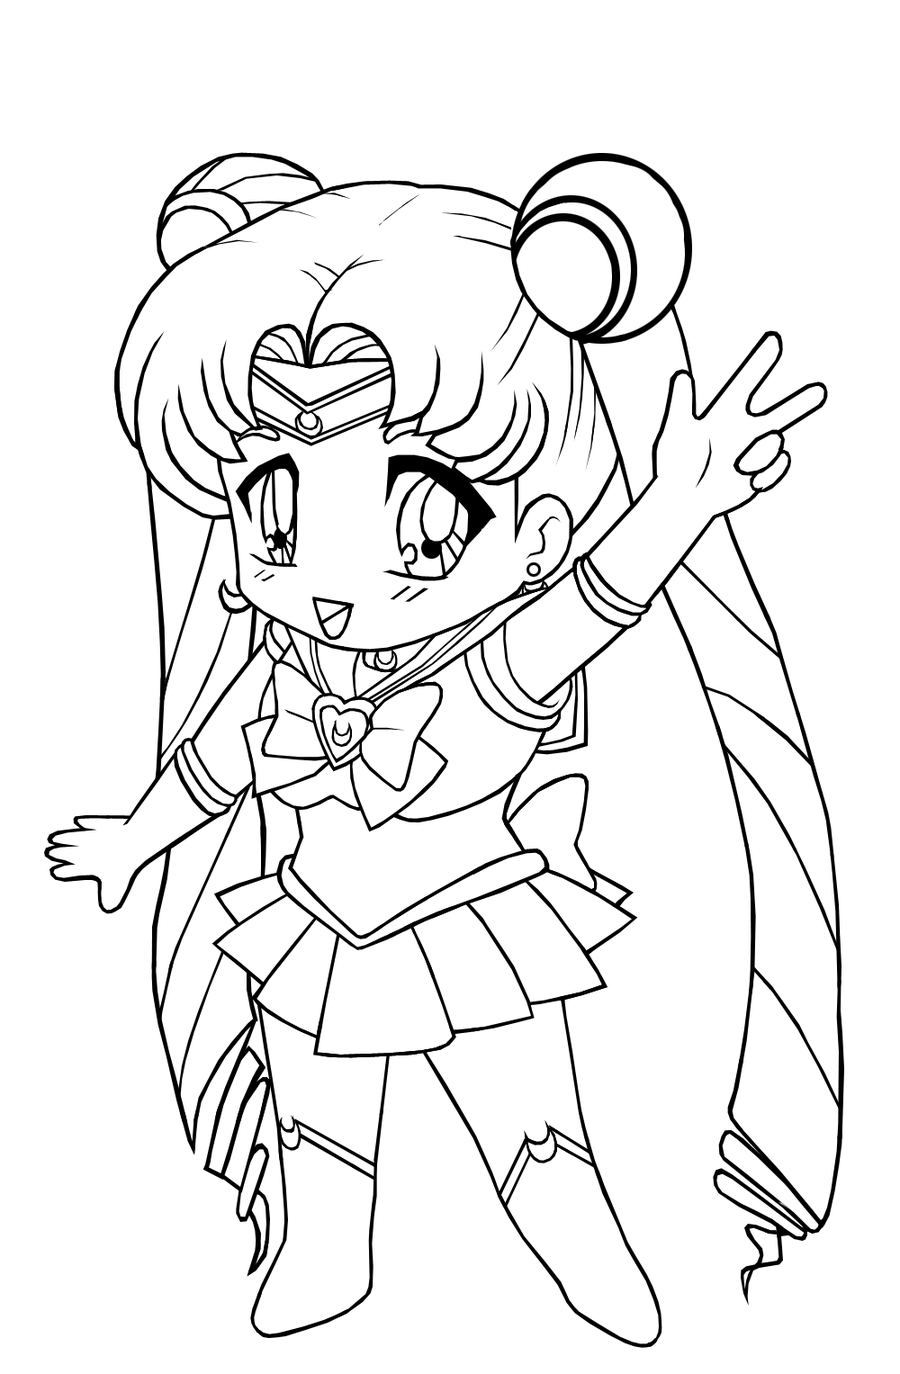 Cartoon Girl Coloring Pages: Anime Cat Girl Coloring Pages